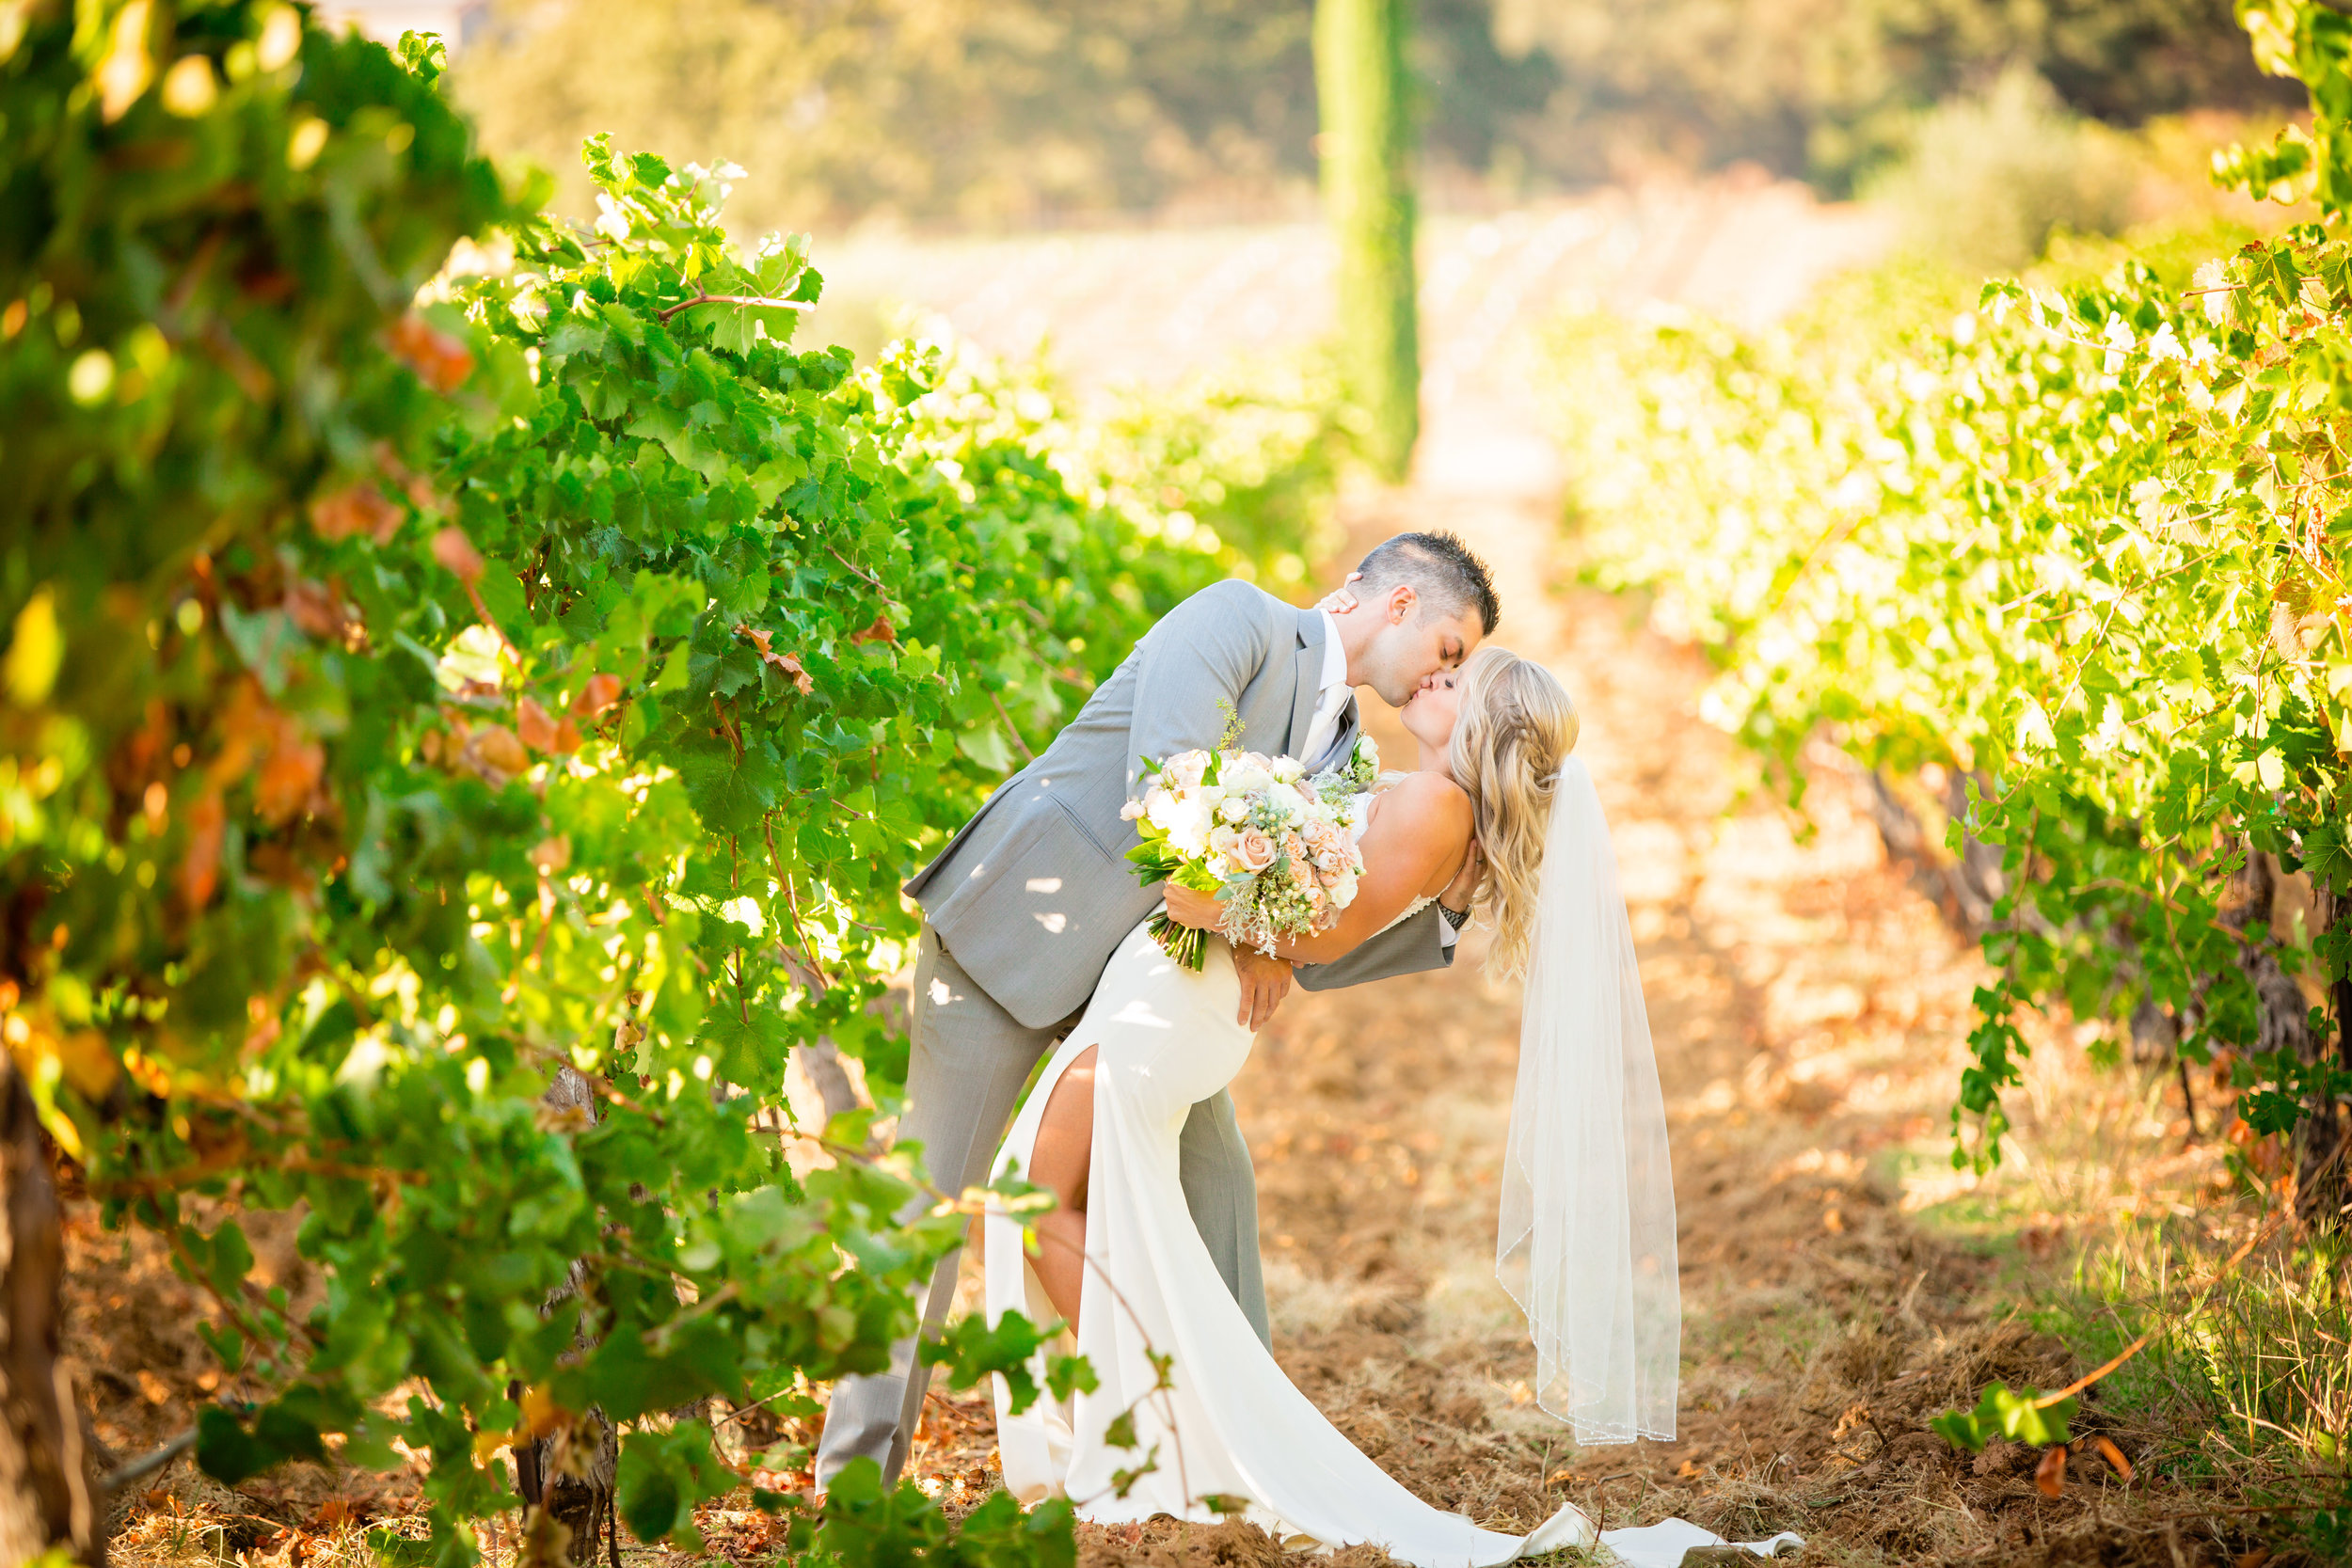 3 Jamie & Cameron - Bella Piazza Winery -  Sacramento Wedding Photographer - Ashley Teasley Photography (5 of 87).jpg